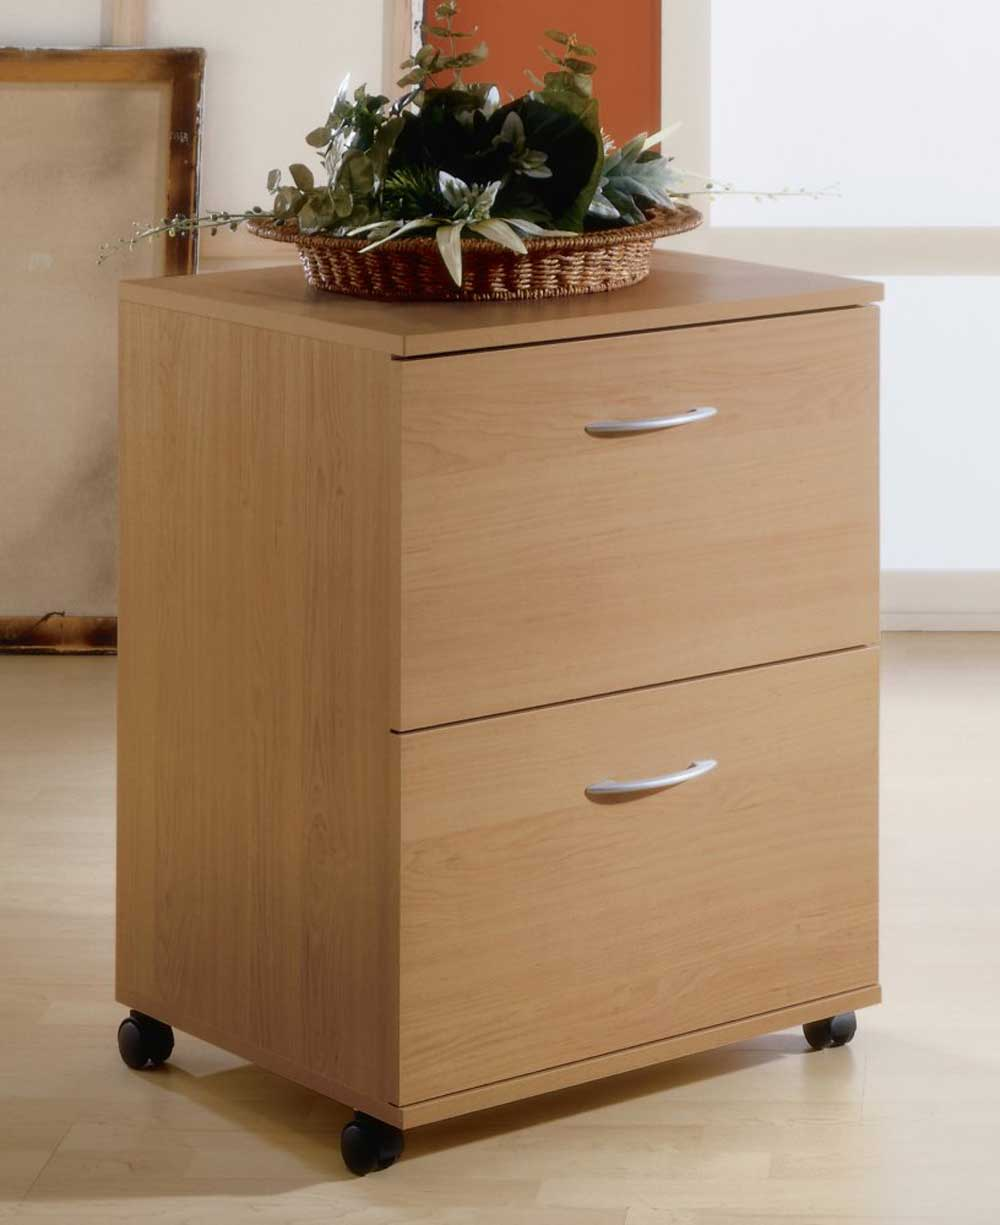 Pine 2 Drawers Mobile and Vertical File Cabinets